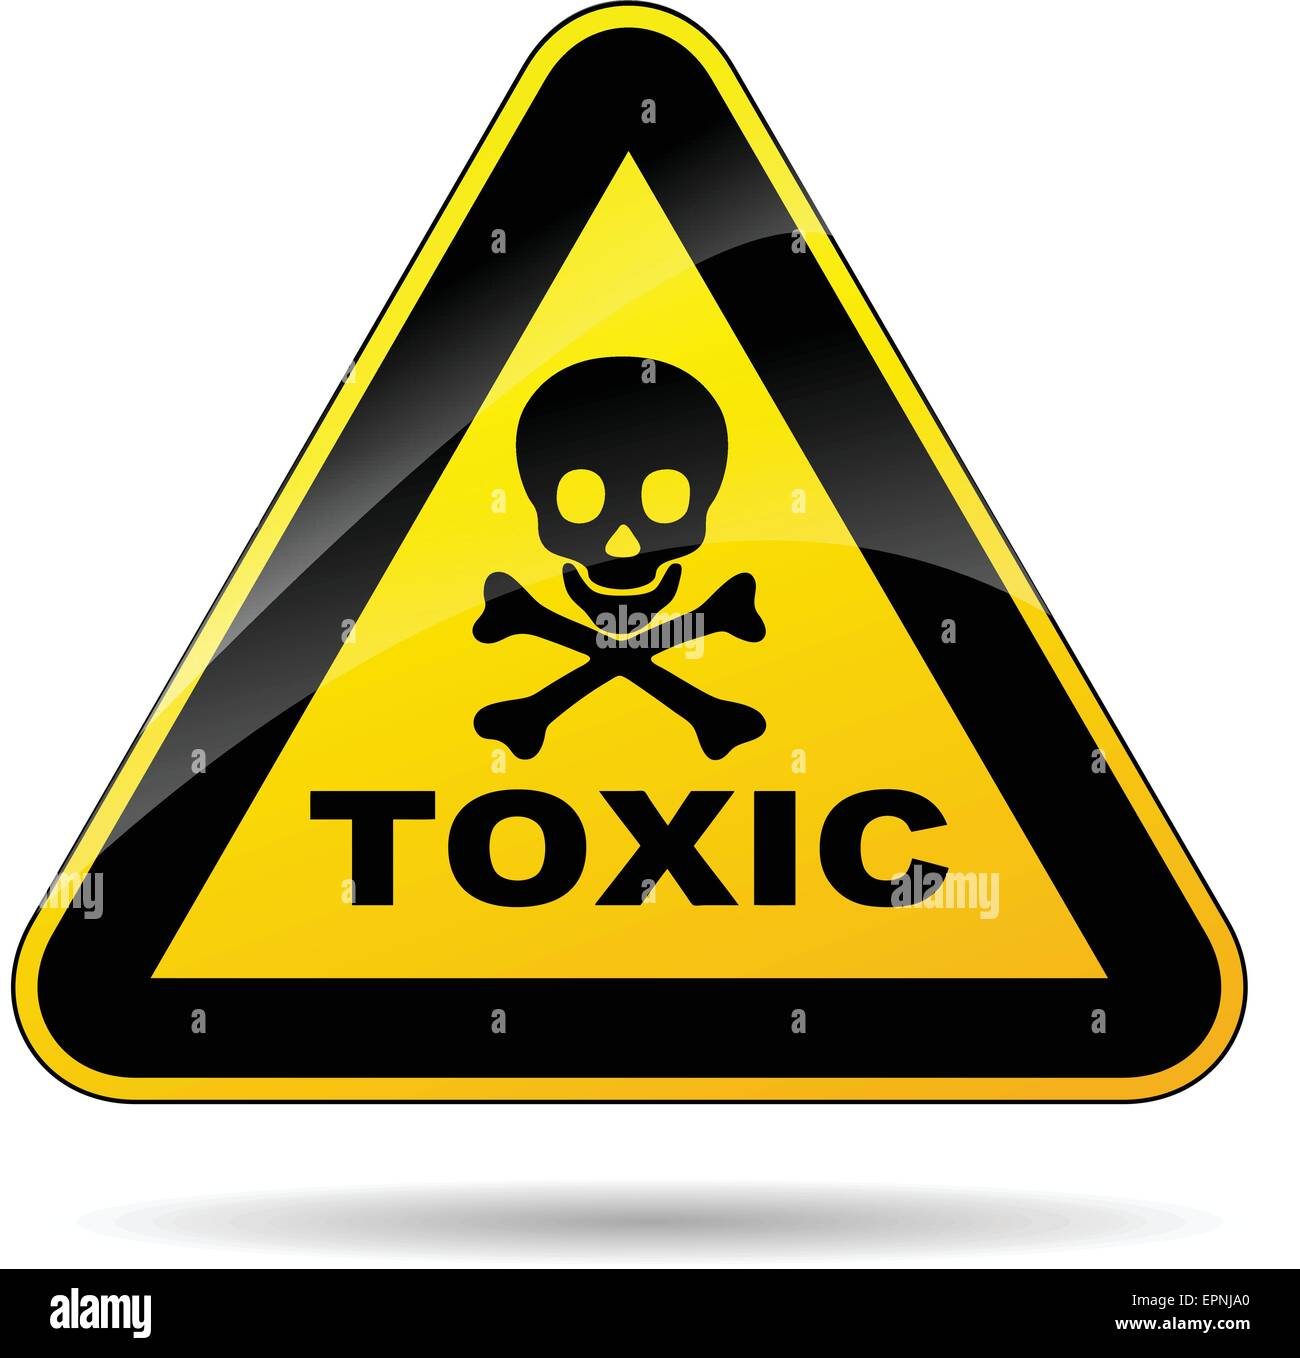 illustration of yellow triangle sign for toxicity - Stock Image